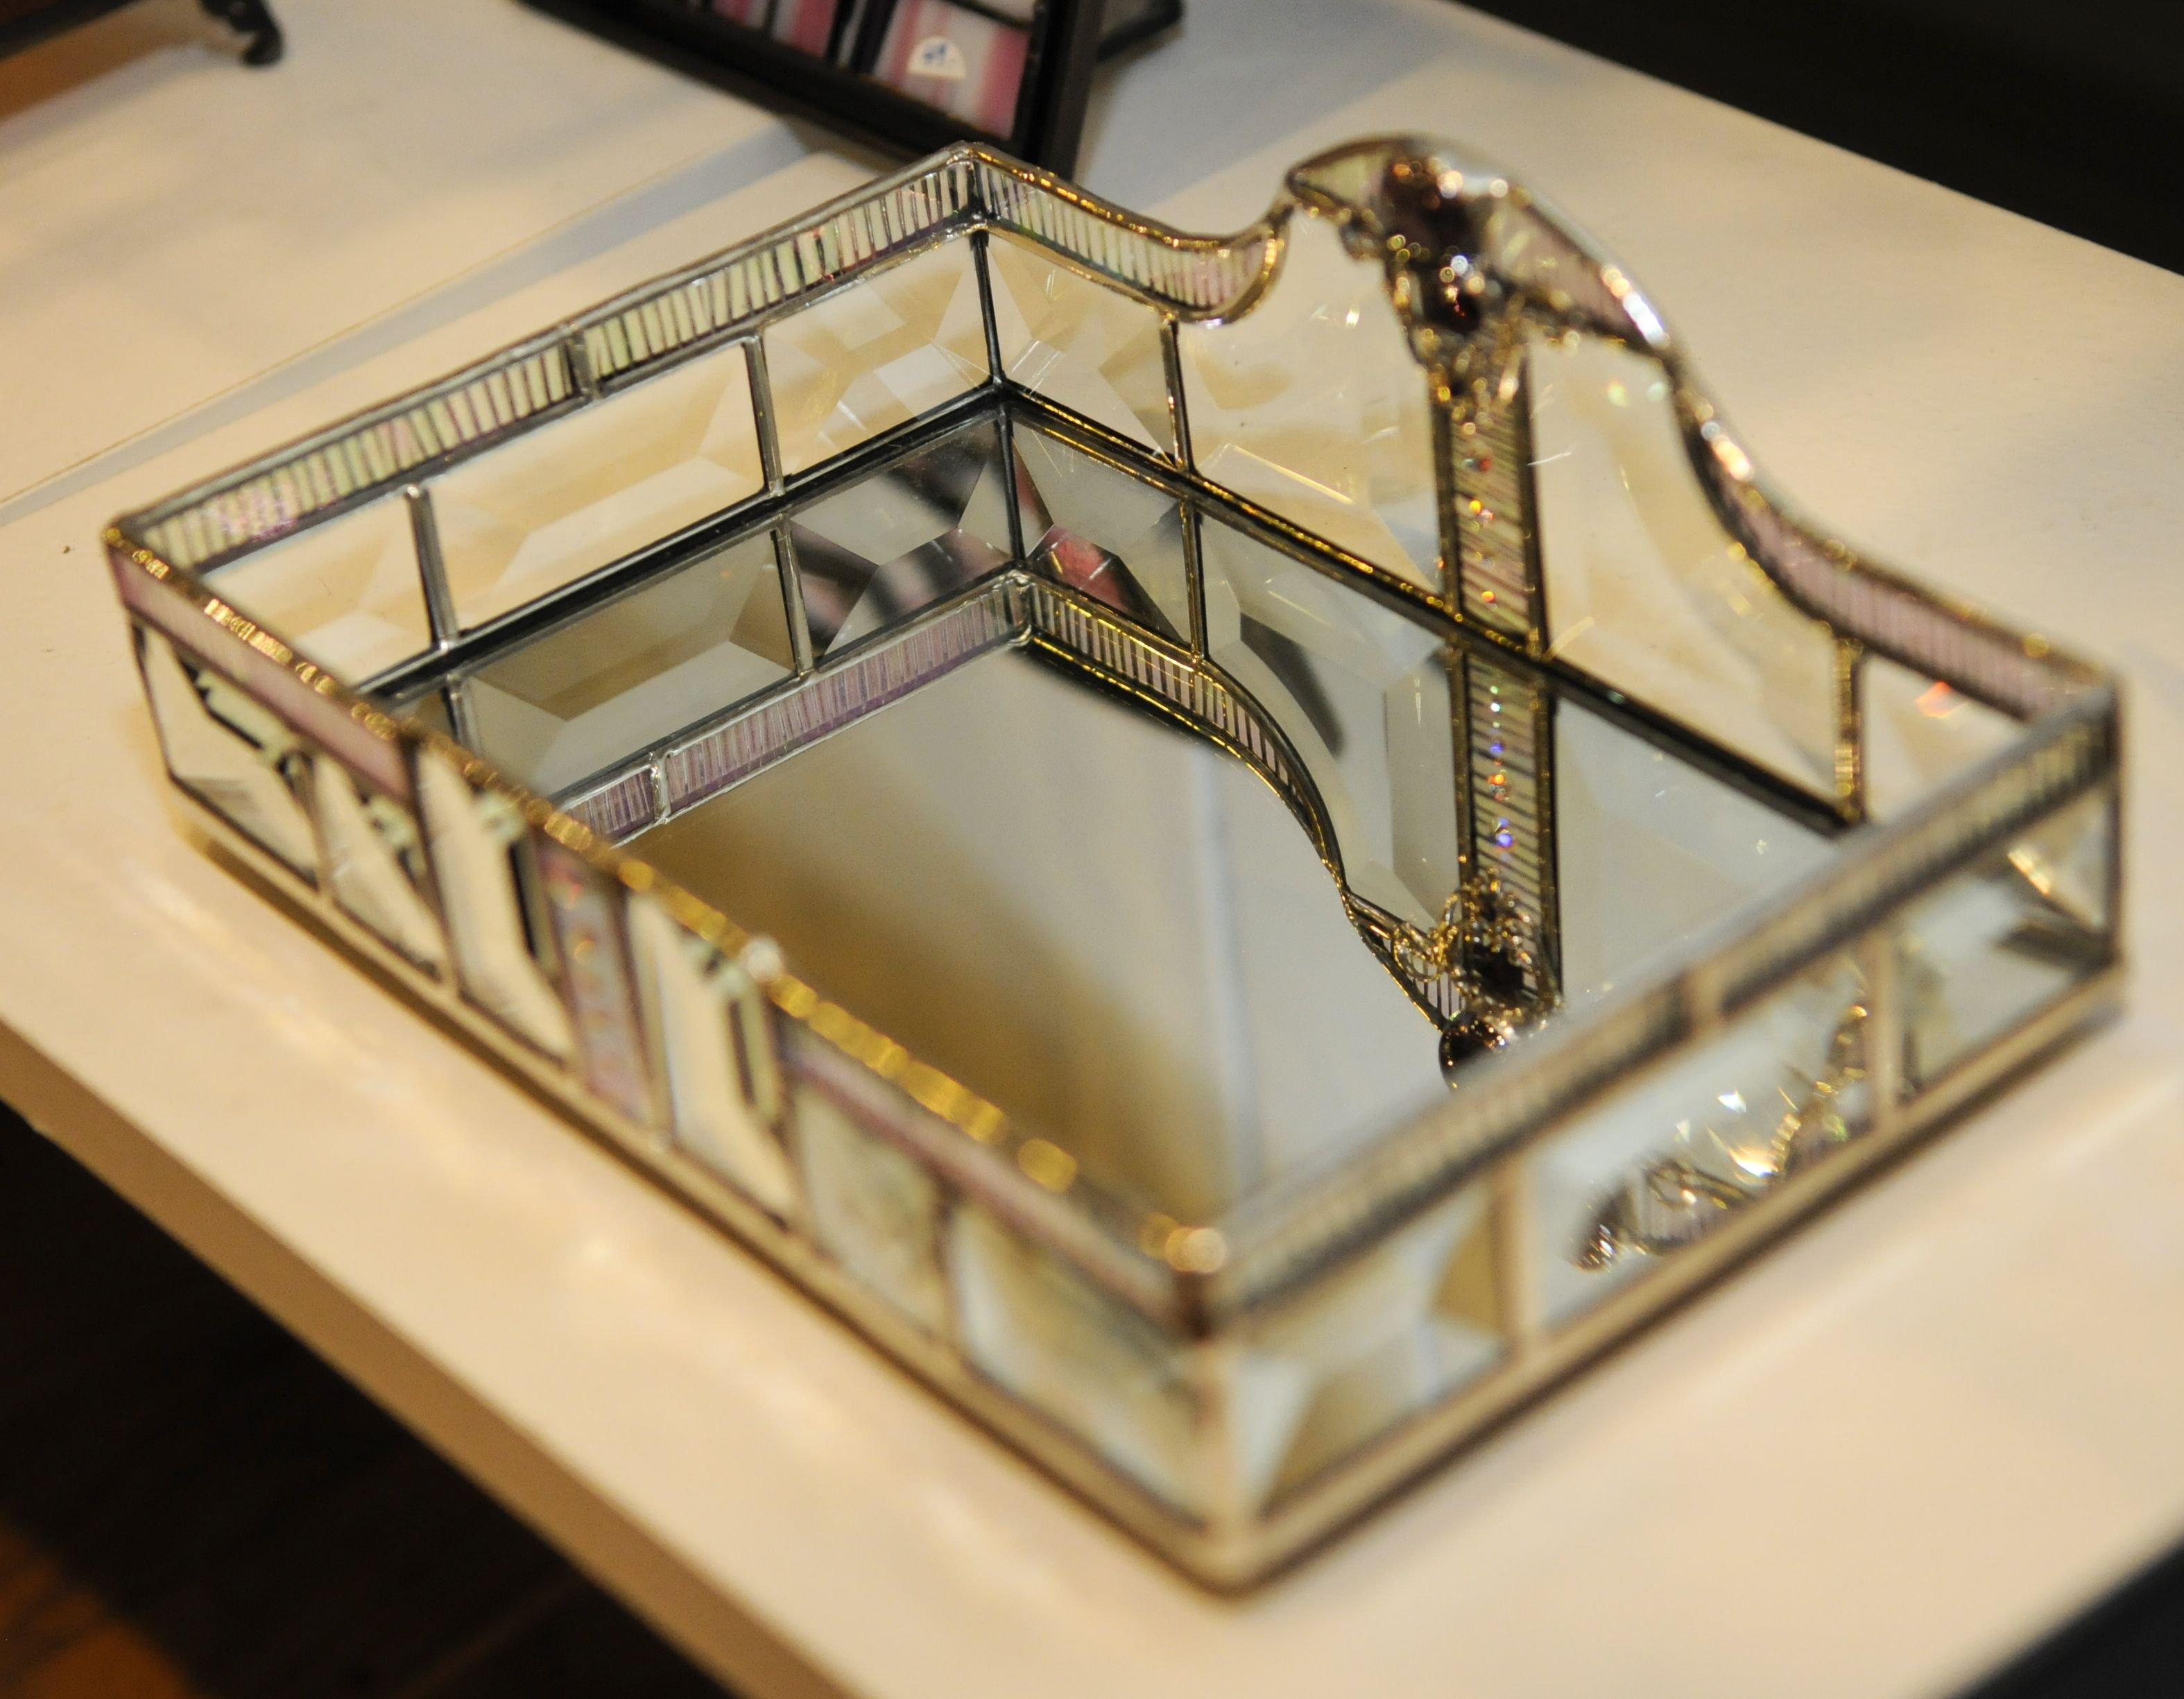 Glass Tray By Ellen Turner At The Yes Store In Santa Barbara